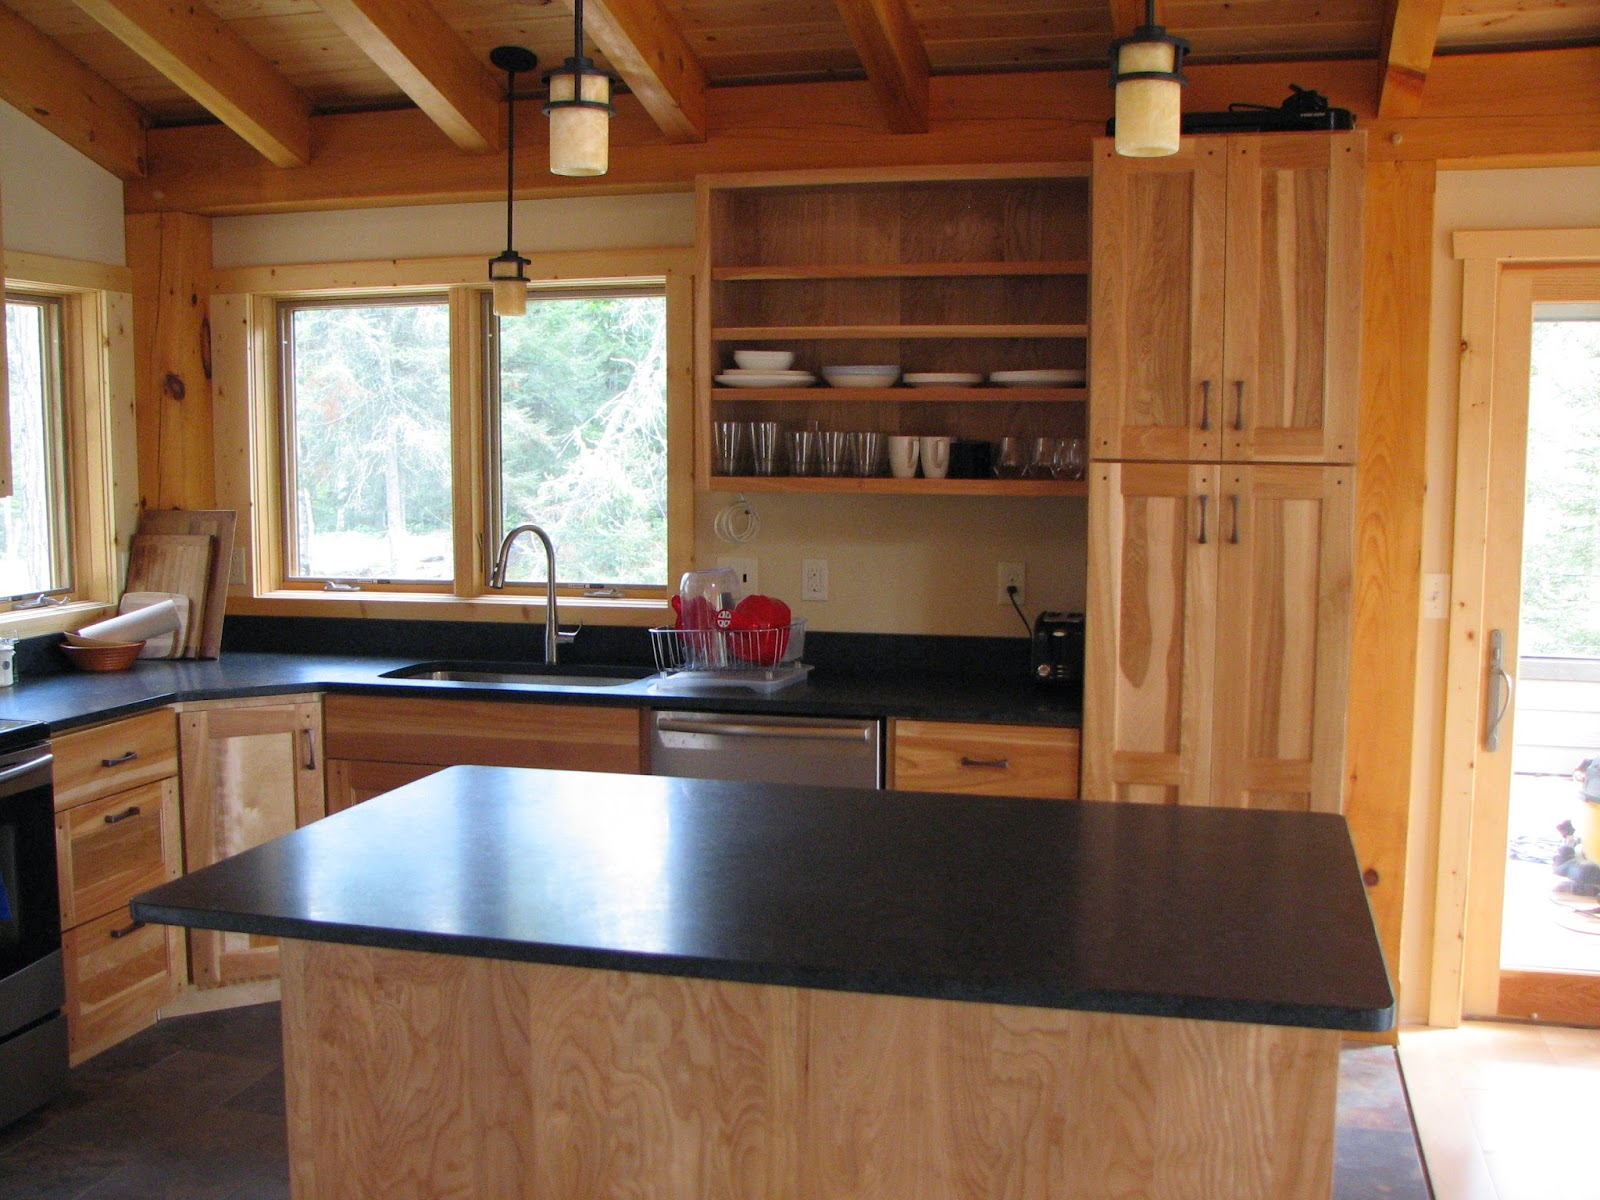 Birch Cabinets with Black Granite Countertops